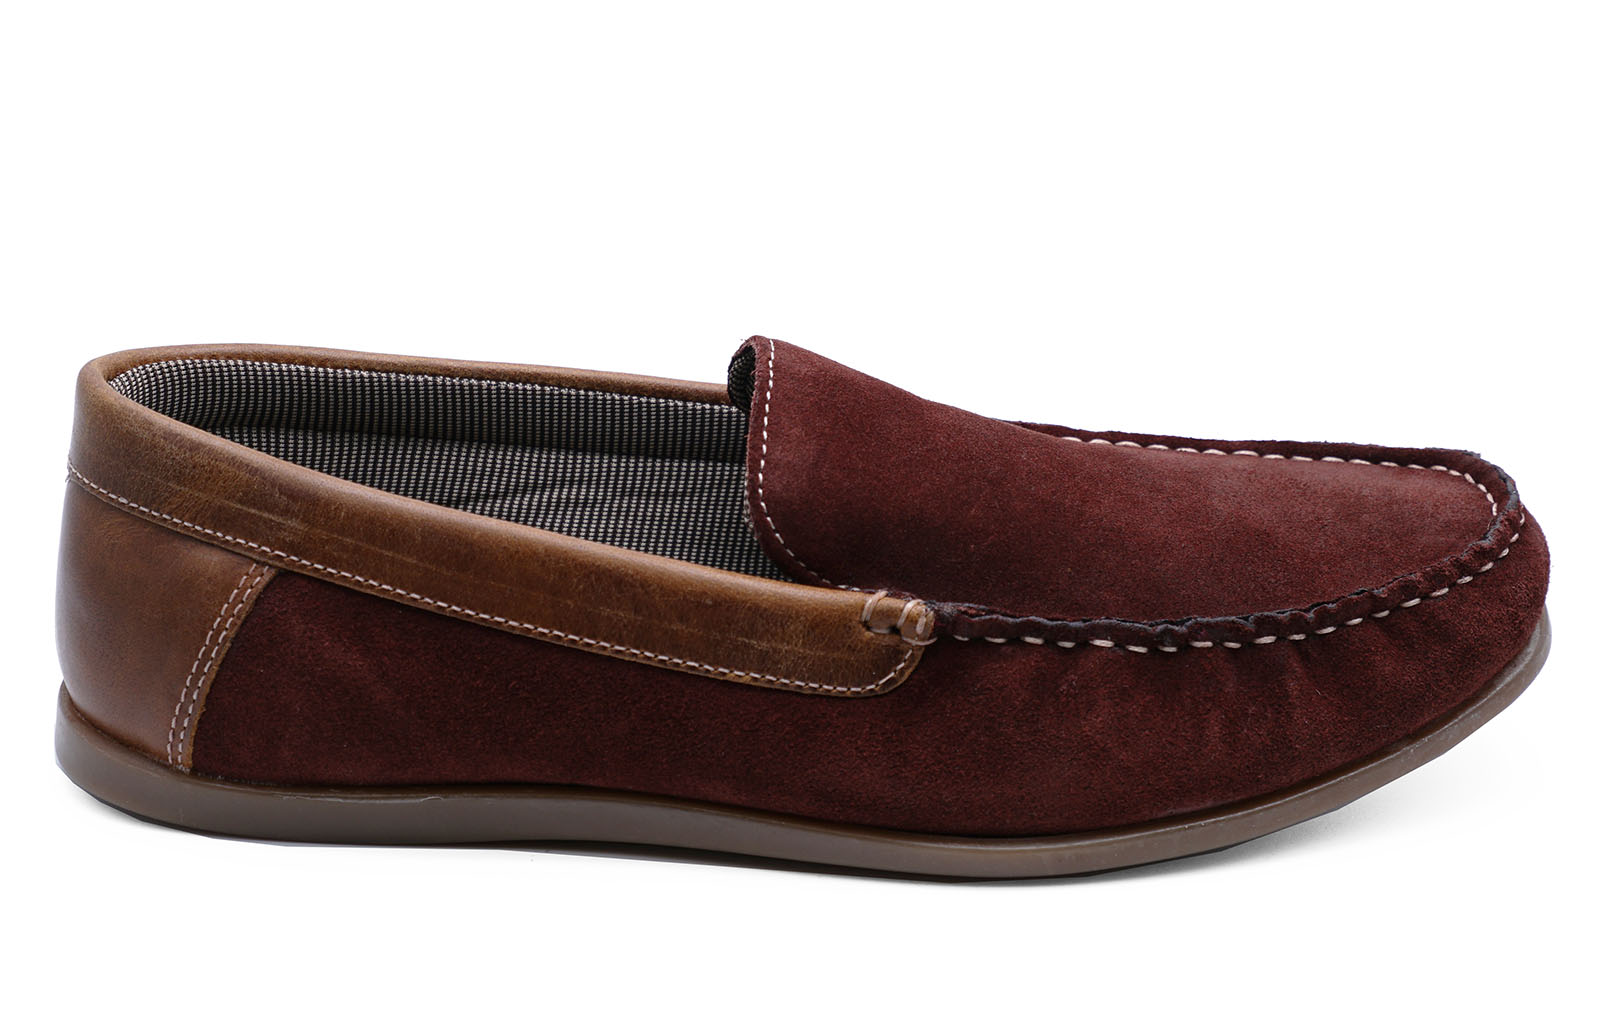 thumbnail 7 - MENS-LEATHER-TAN-BURGUNDY-SLIP-ON-LOAFERS-DRIVING-BOAT-DECK-MOCCASIN-SHOES-6-12